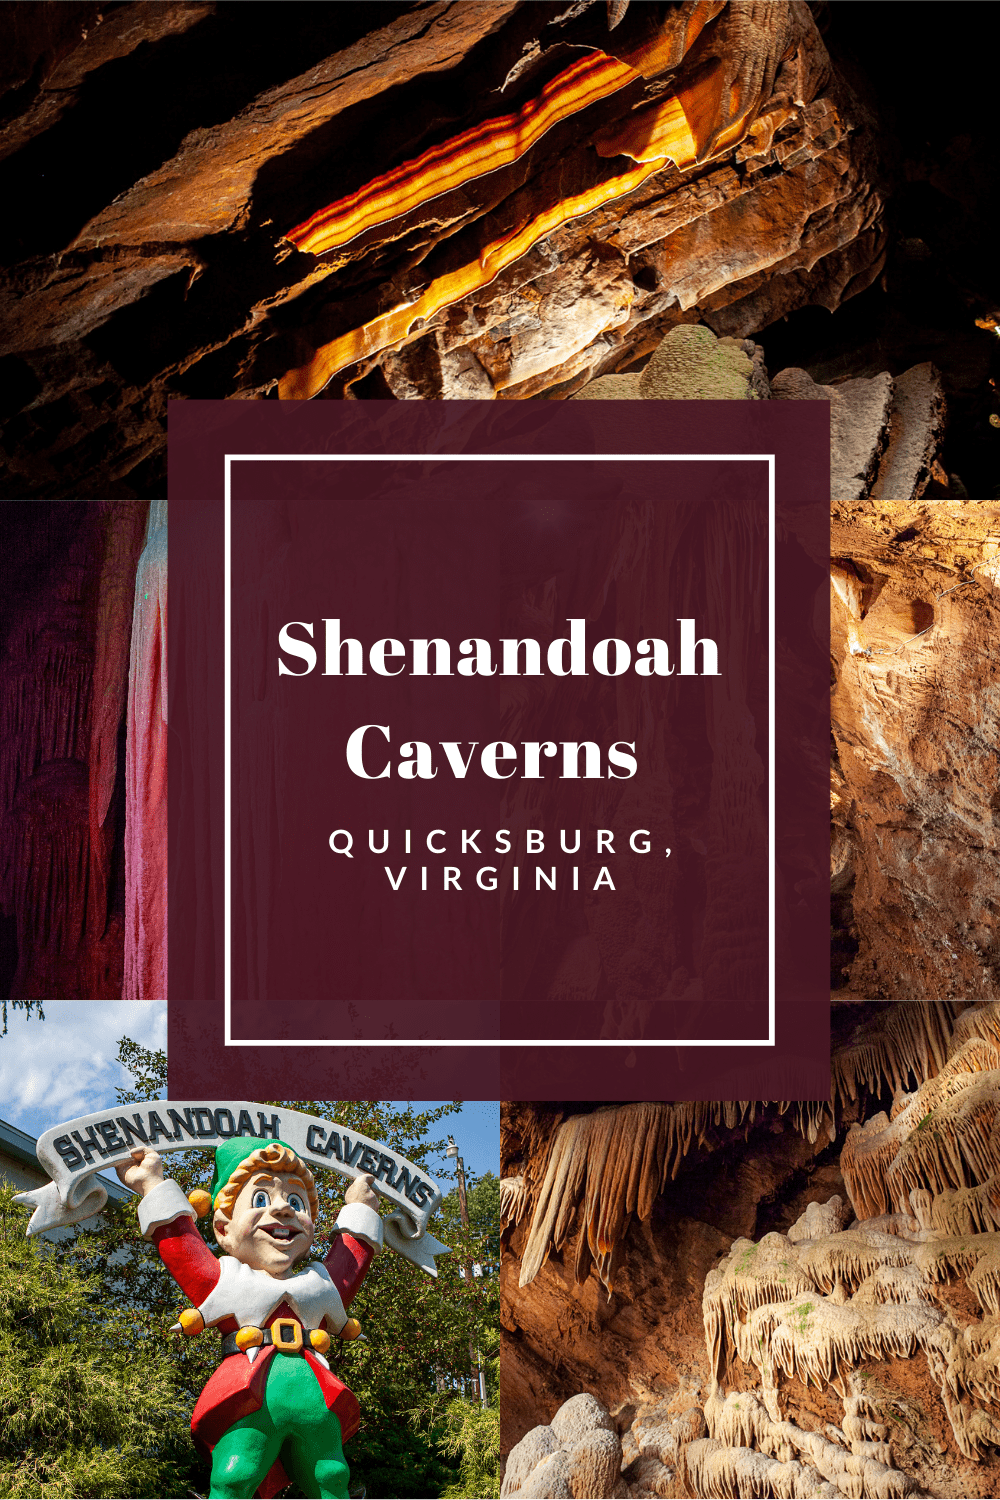 Shenandoah Caverns in Quicksburg, Virginia is a beautiful natural wonder with quirk, kitsch…and bacon… making it a fun stop to add to any Virginia road trip itinerary. #VirginiaRoadsideAttractions #VirginiaRoadsideAttraction #RoadsideAttractions #RoadsideAttraction #RoadTrip #VirginiaRoadTrip #VirginiaRoadTripBucketLists #VirginiaBucketList #VirginiaRoadTripIdeas